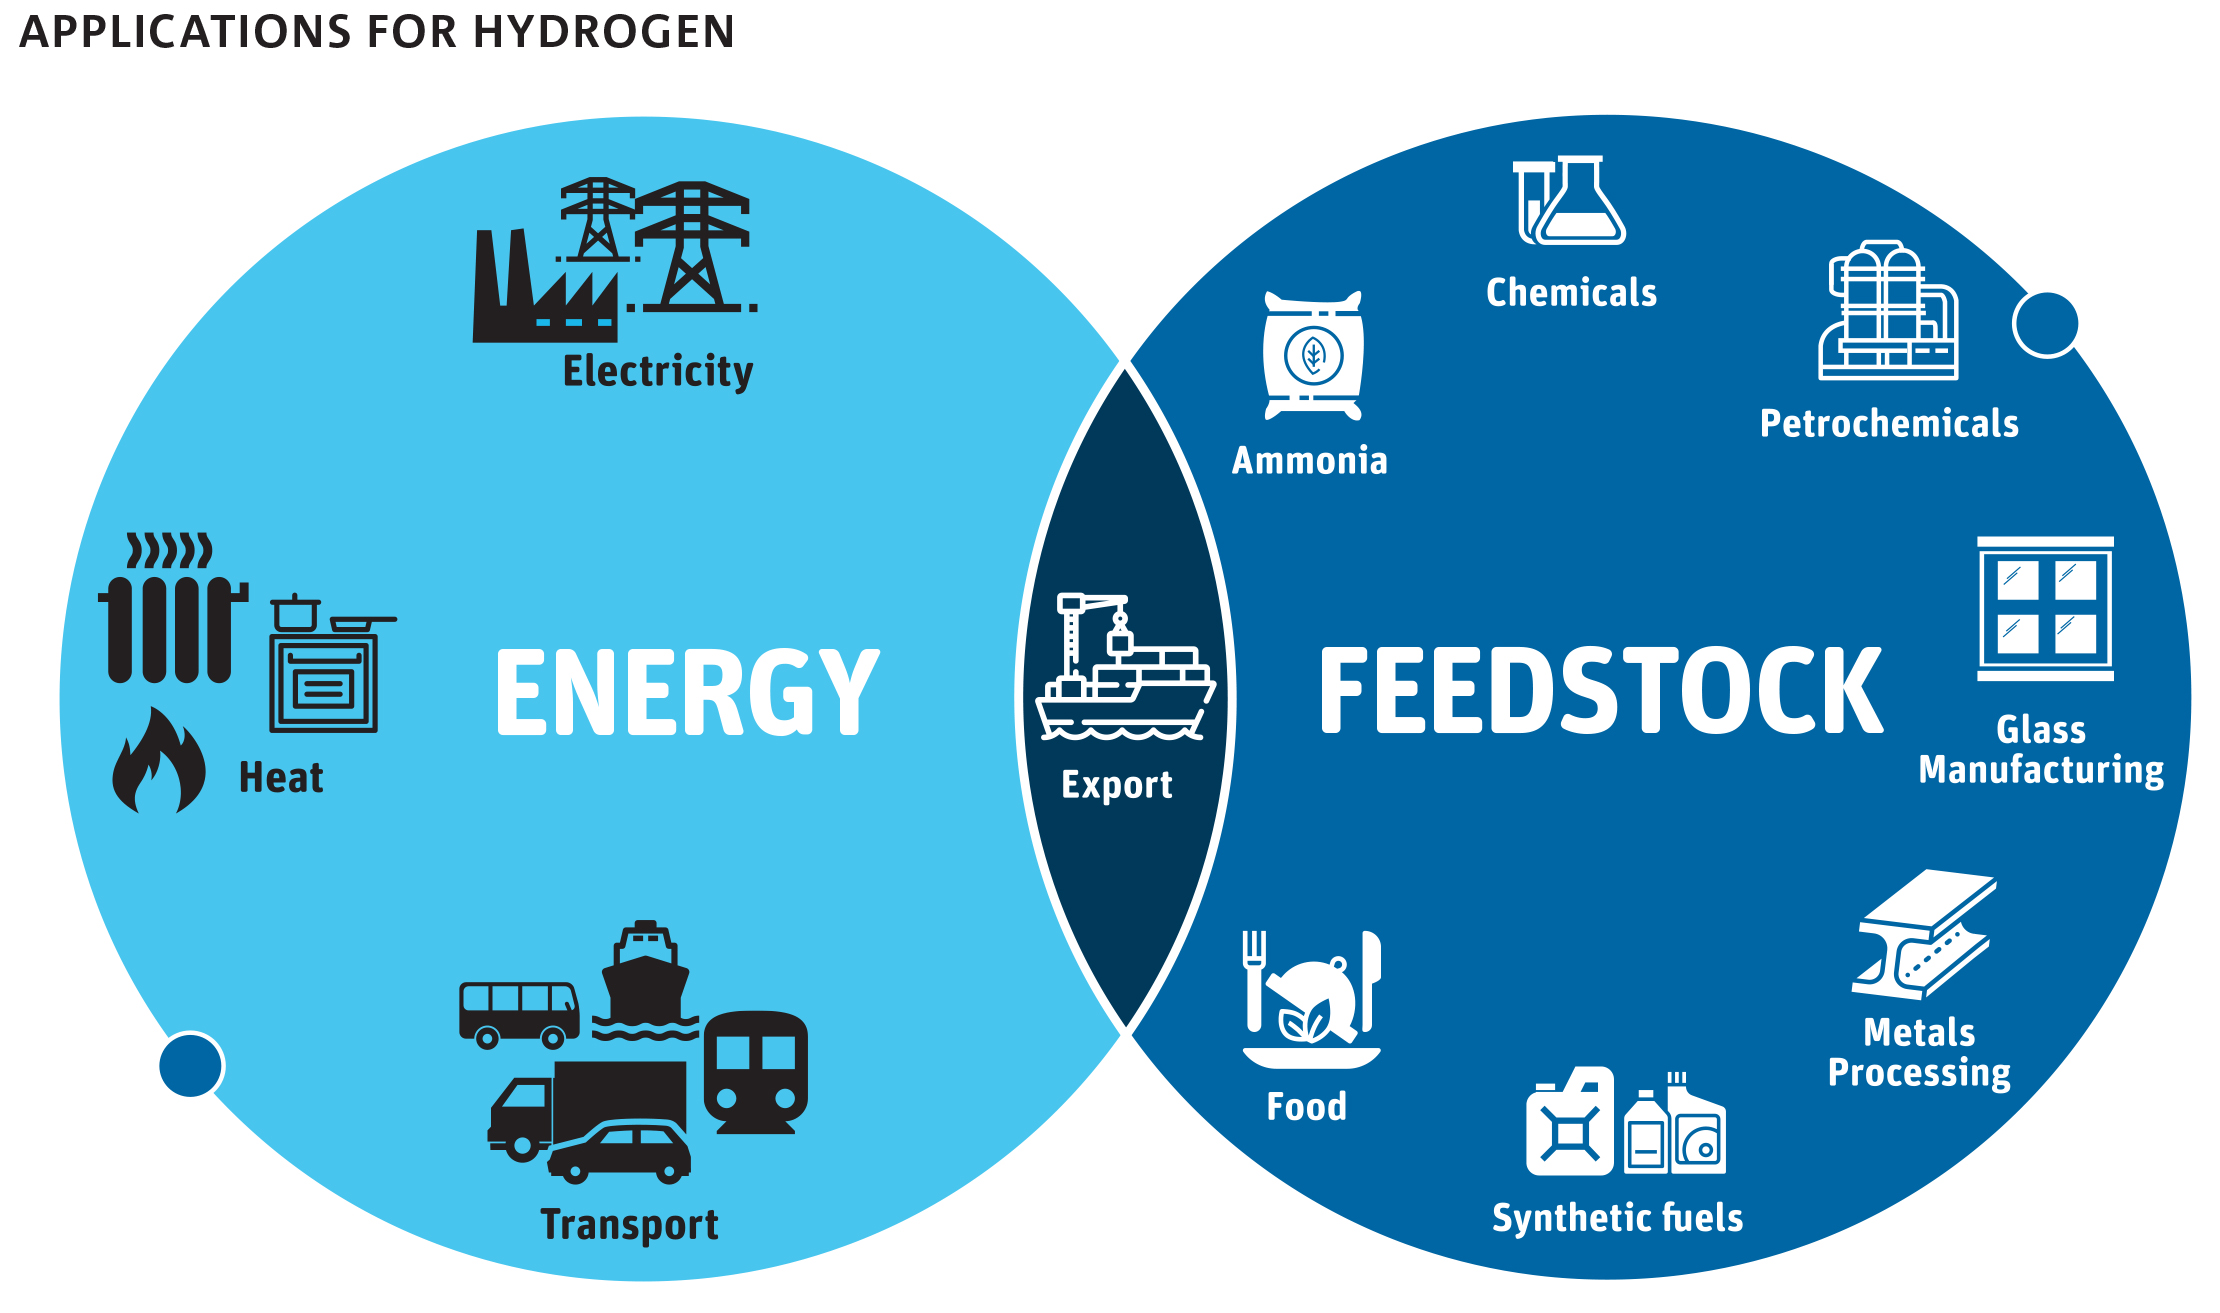 APPLICATIONS FOR HYDROGEN - ENERGY & FEEDSTOCK